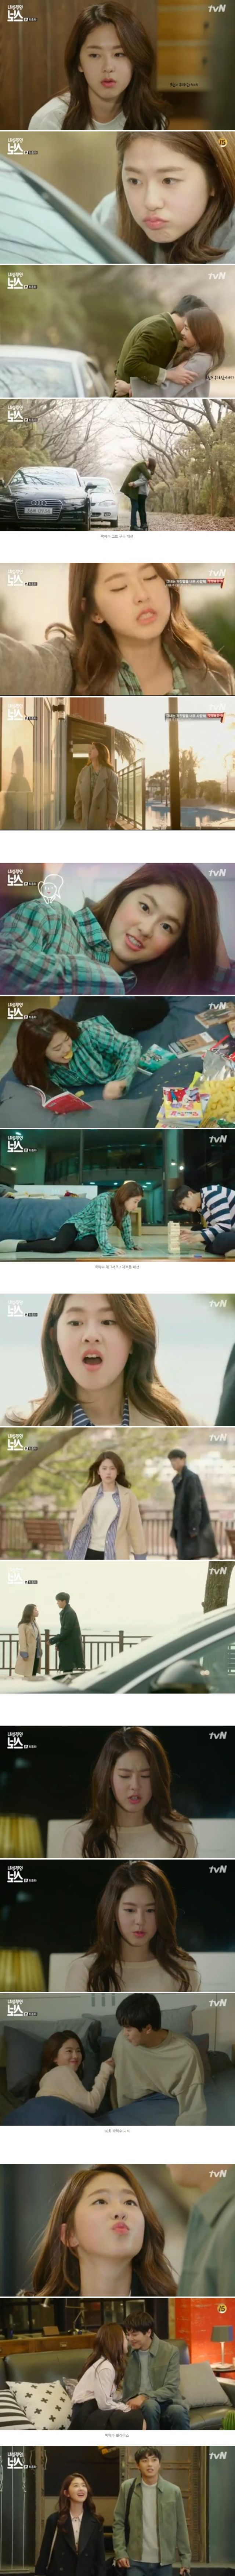 Added final episode 16 captures for the Korean drama 'Introvert Boss'.